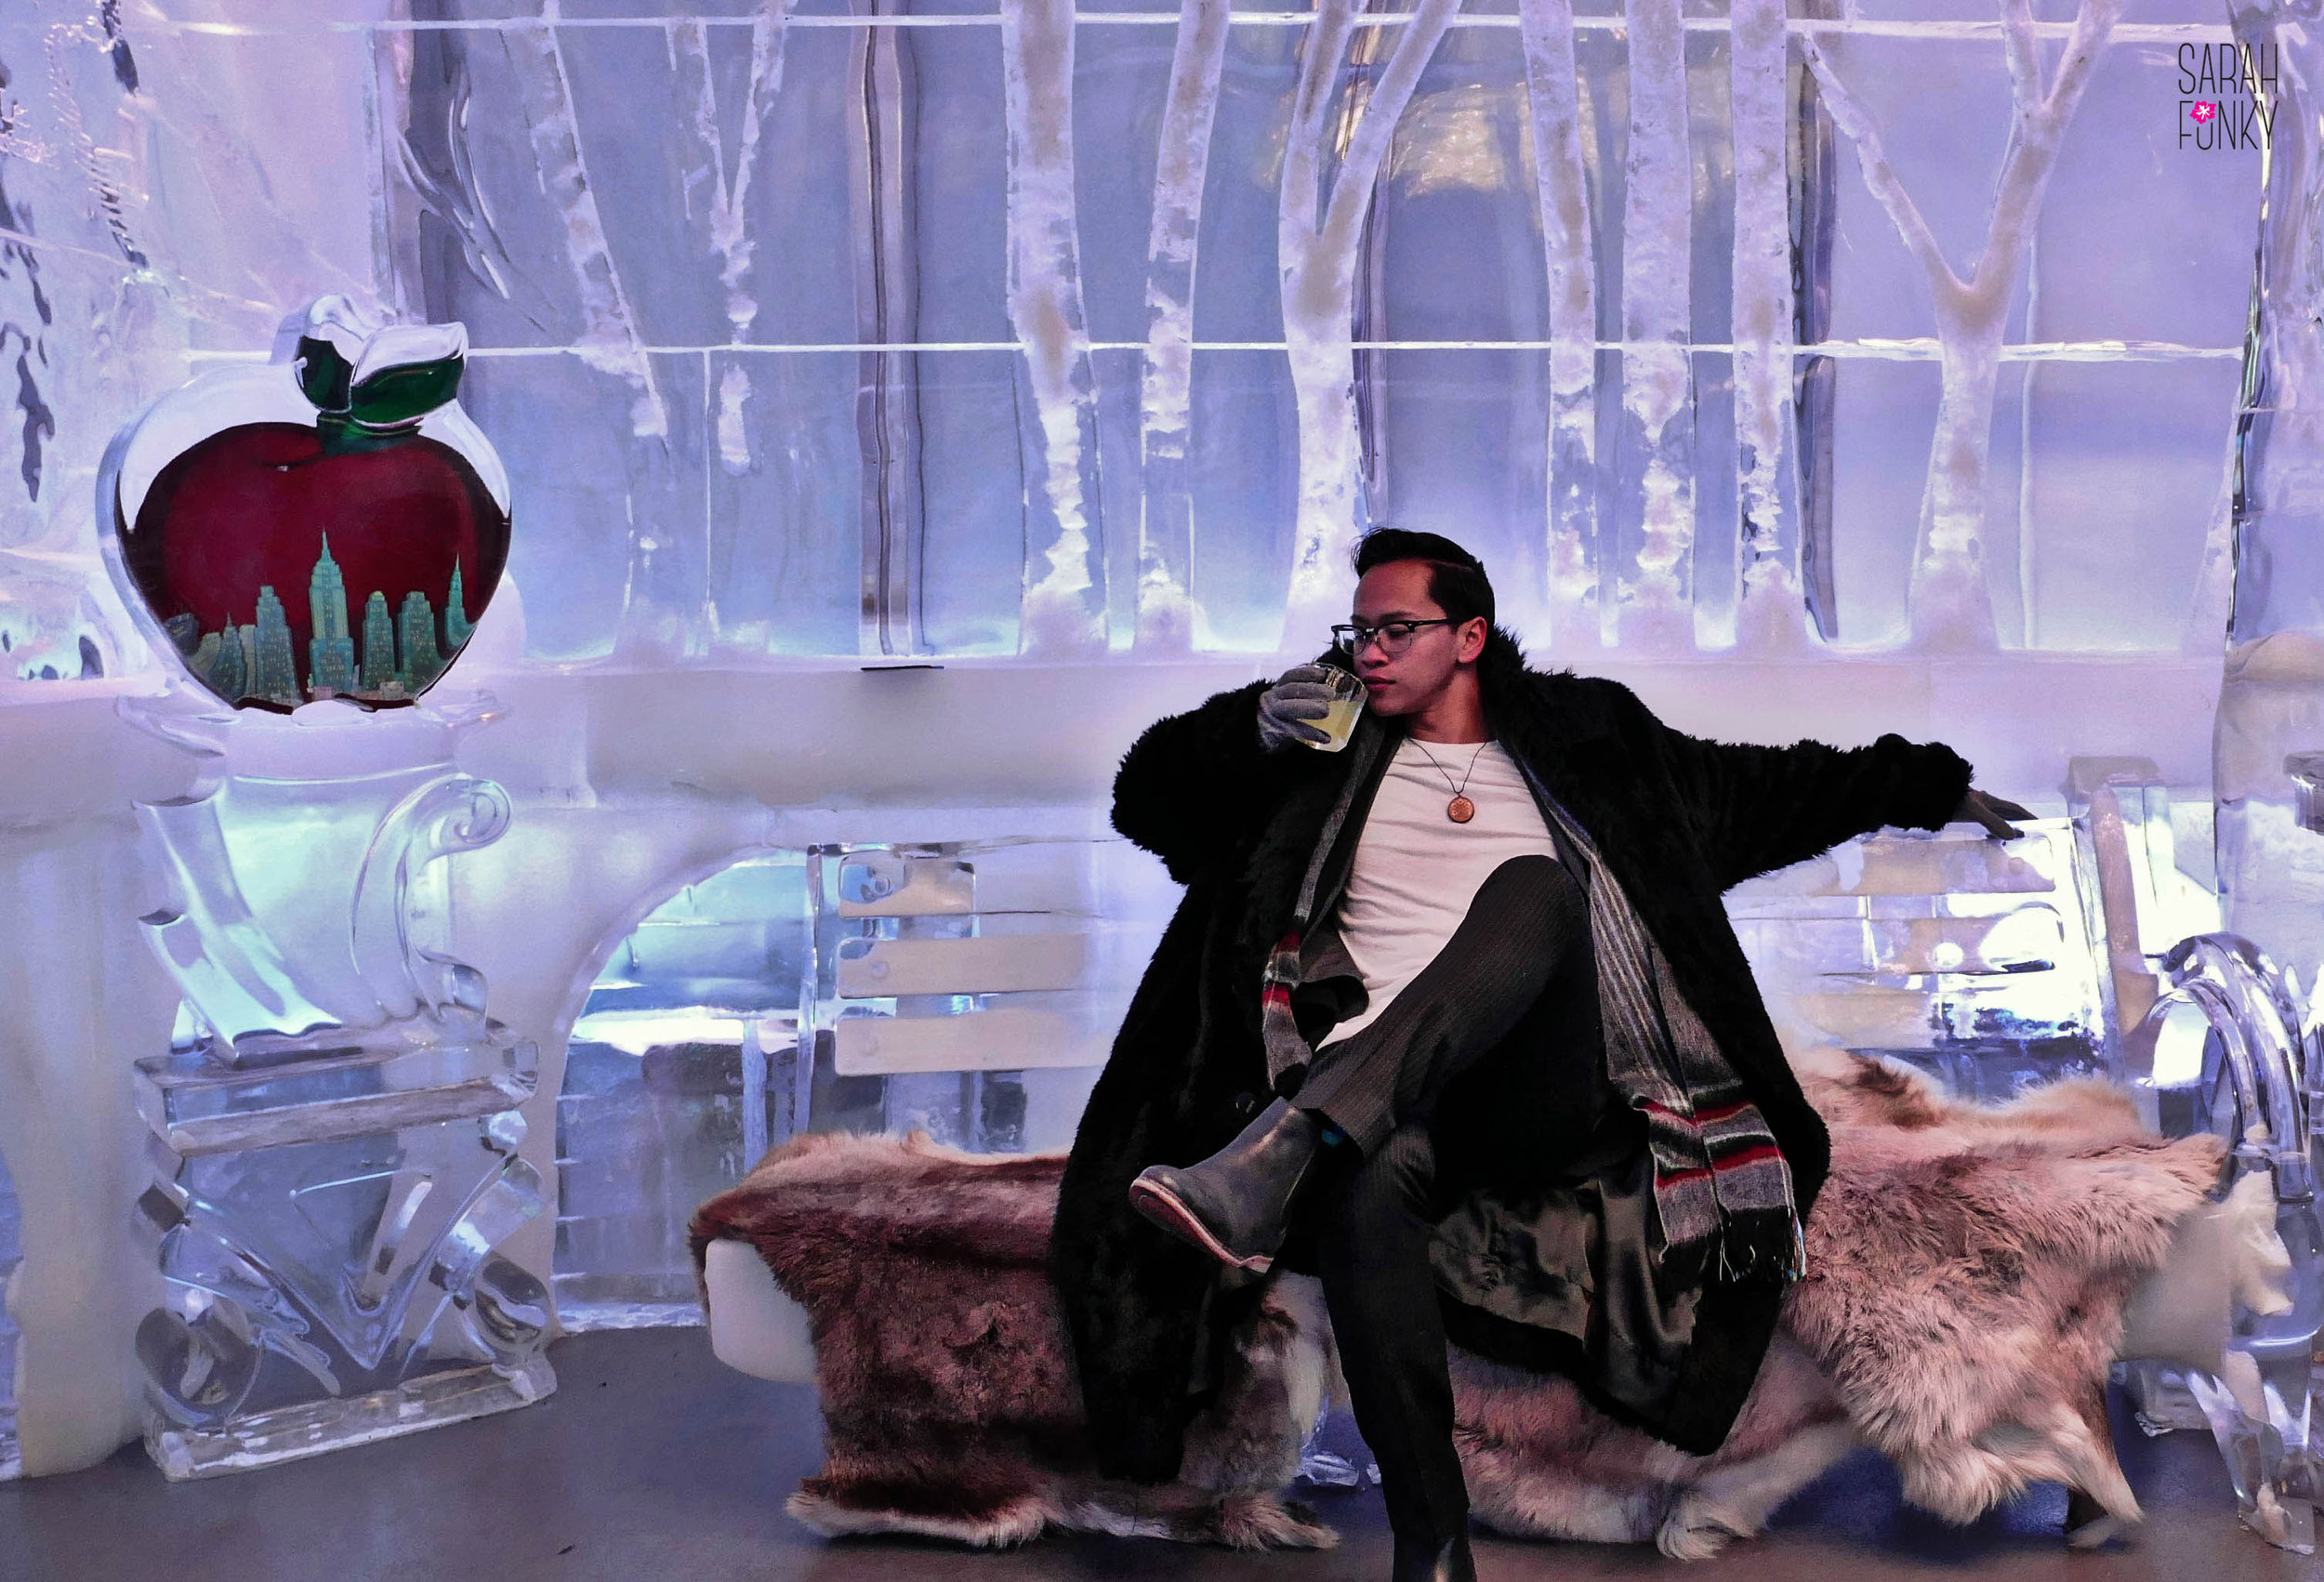 Alex on a bench reminiscent of Central Park, albeit re-imagined in ice and faux fur